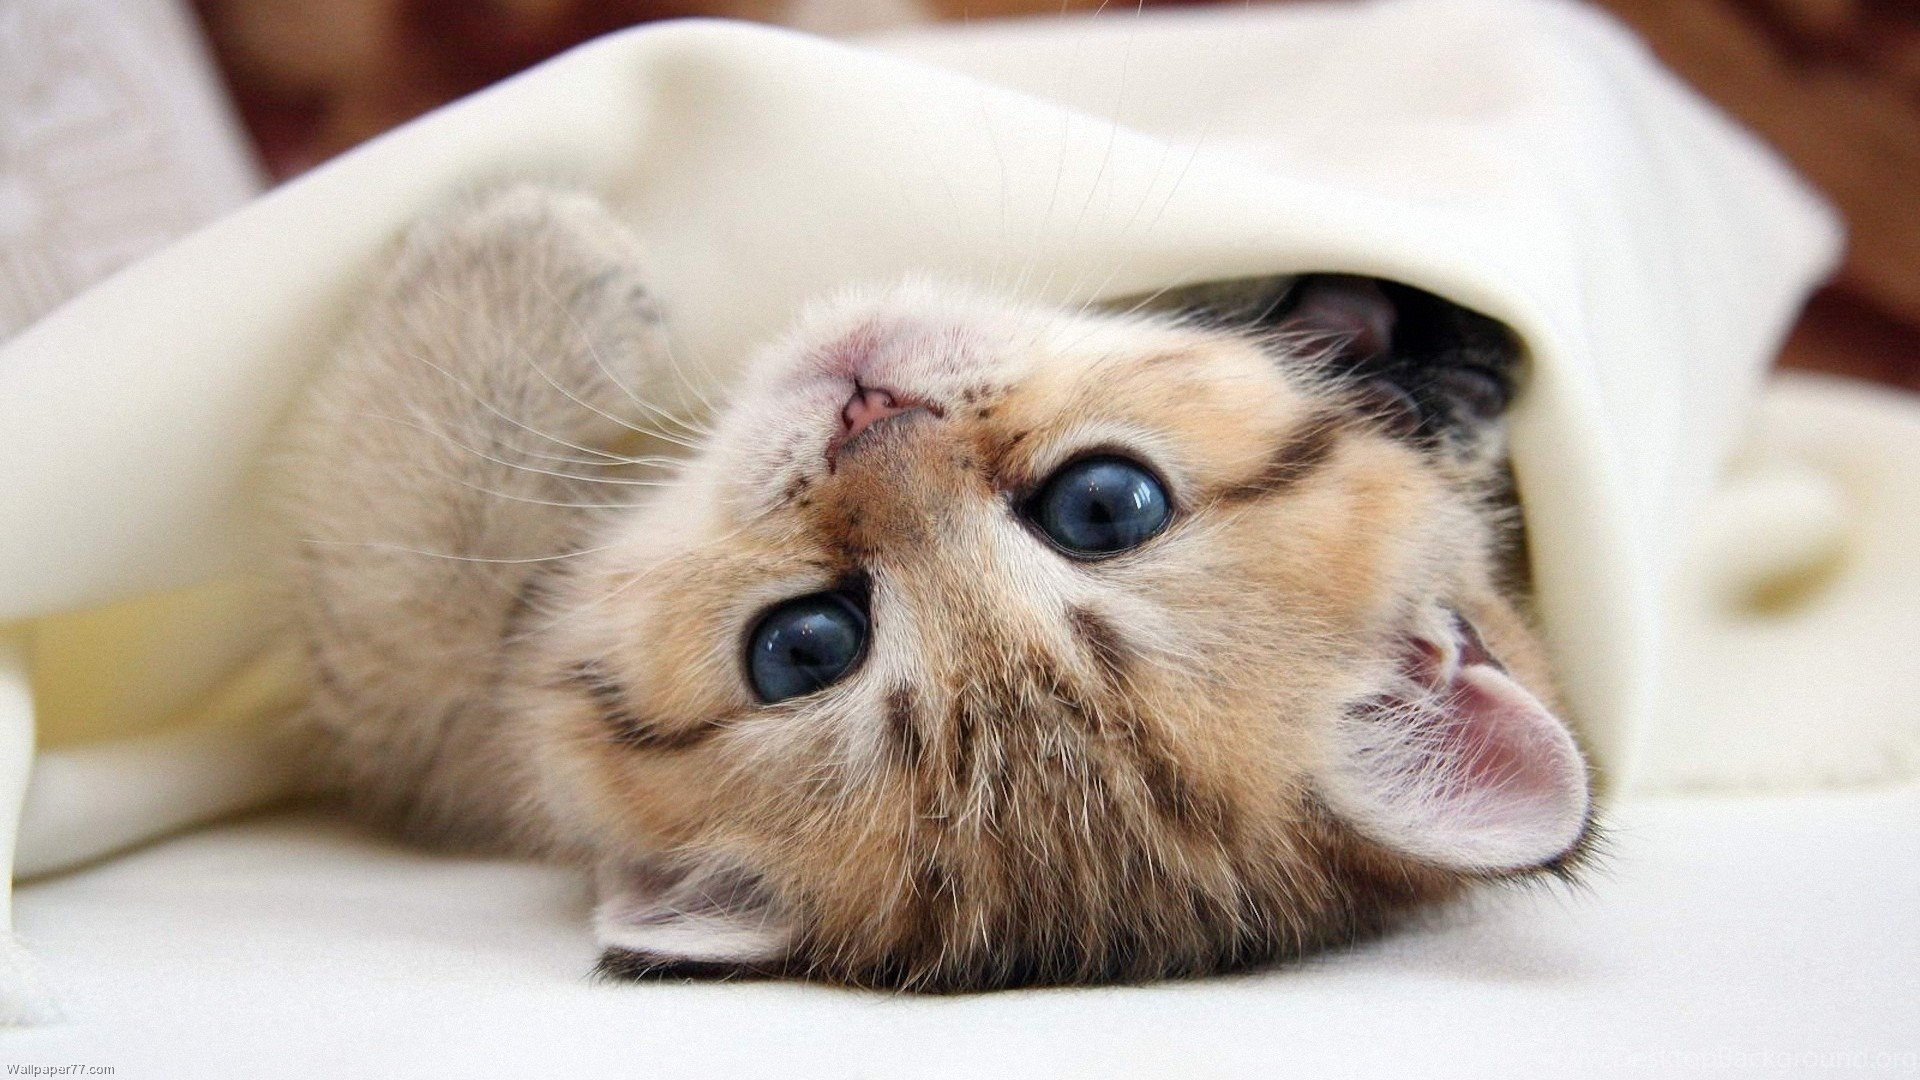 High Resolution Cute Baby Animal Kitty Cat Wallpapers Hd 17 Full Desktop Background